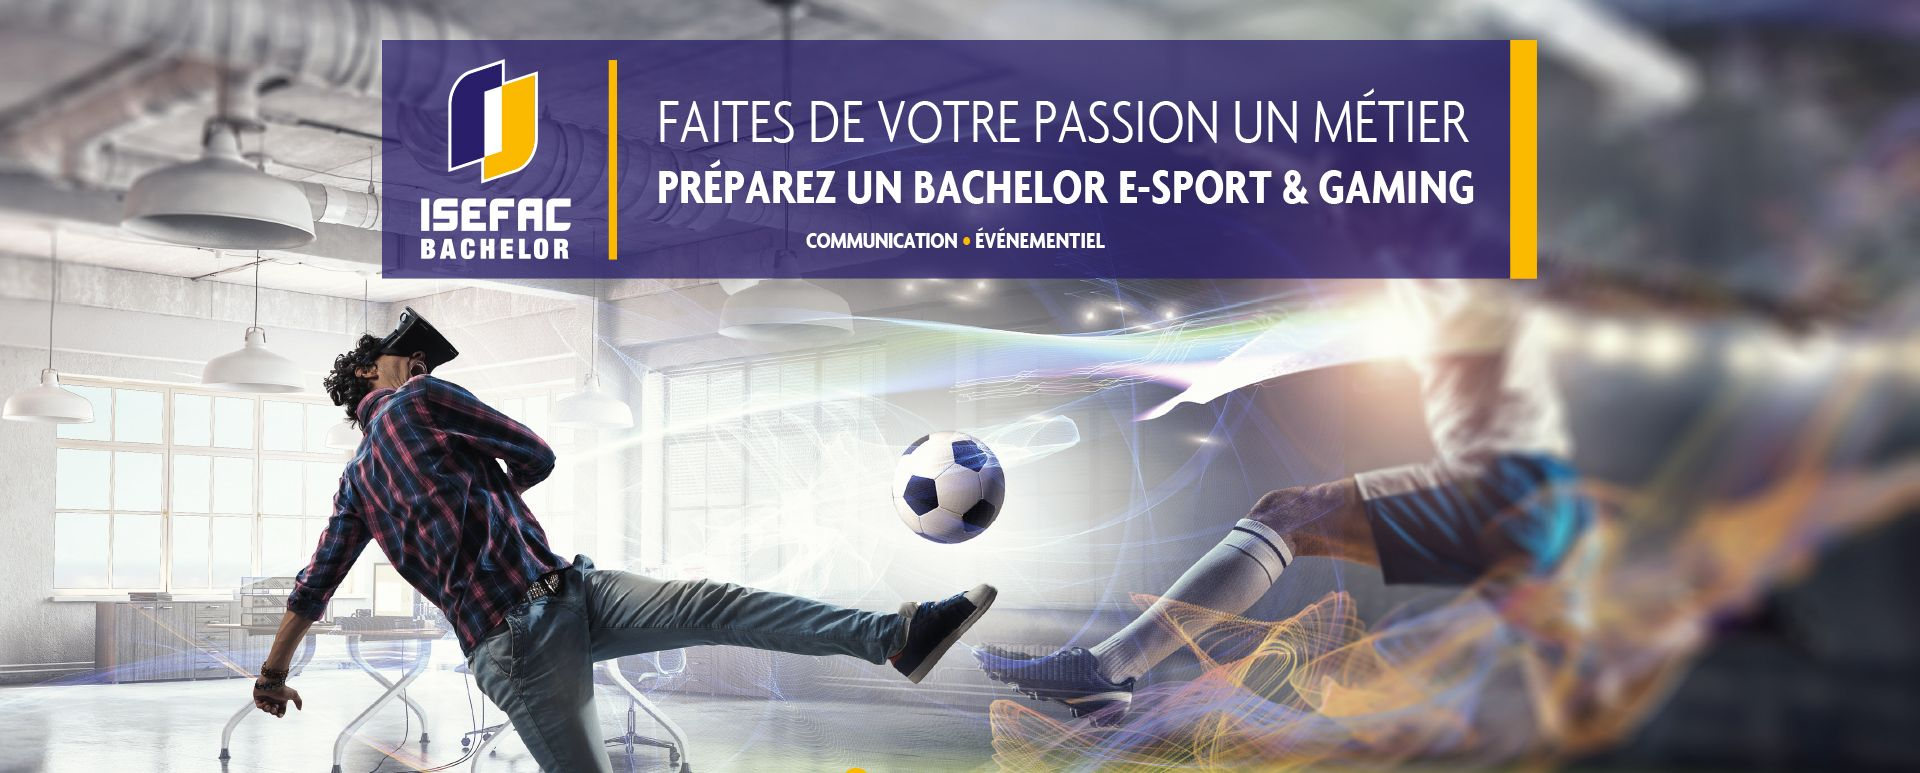 Le Bachelor 100% e-Sport & Gaming à la Paris Games Week